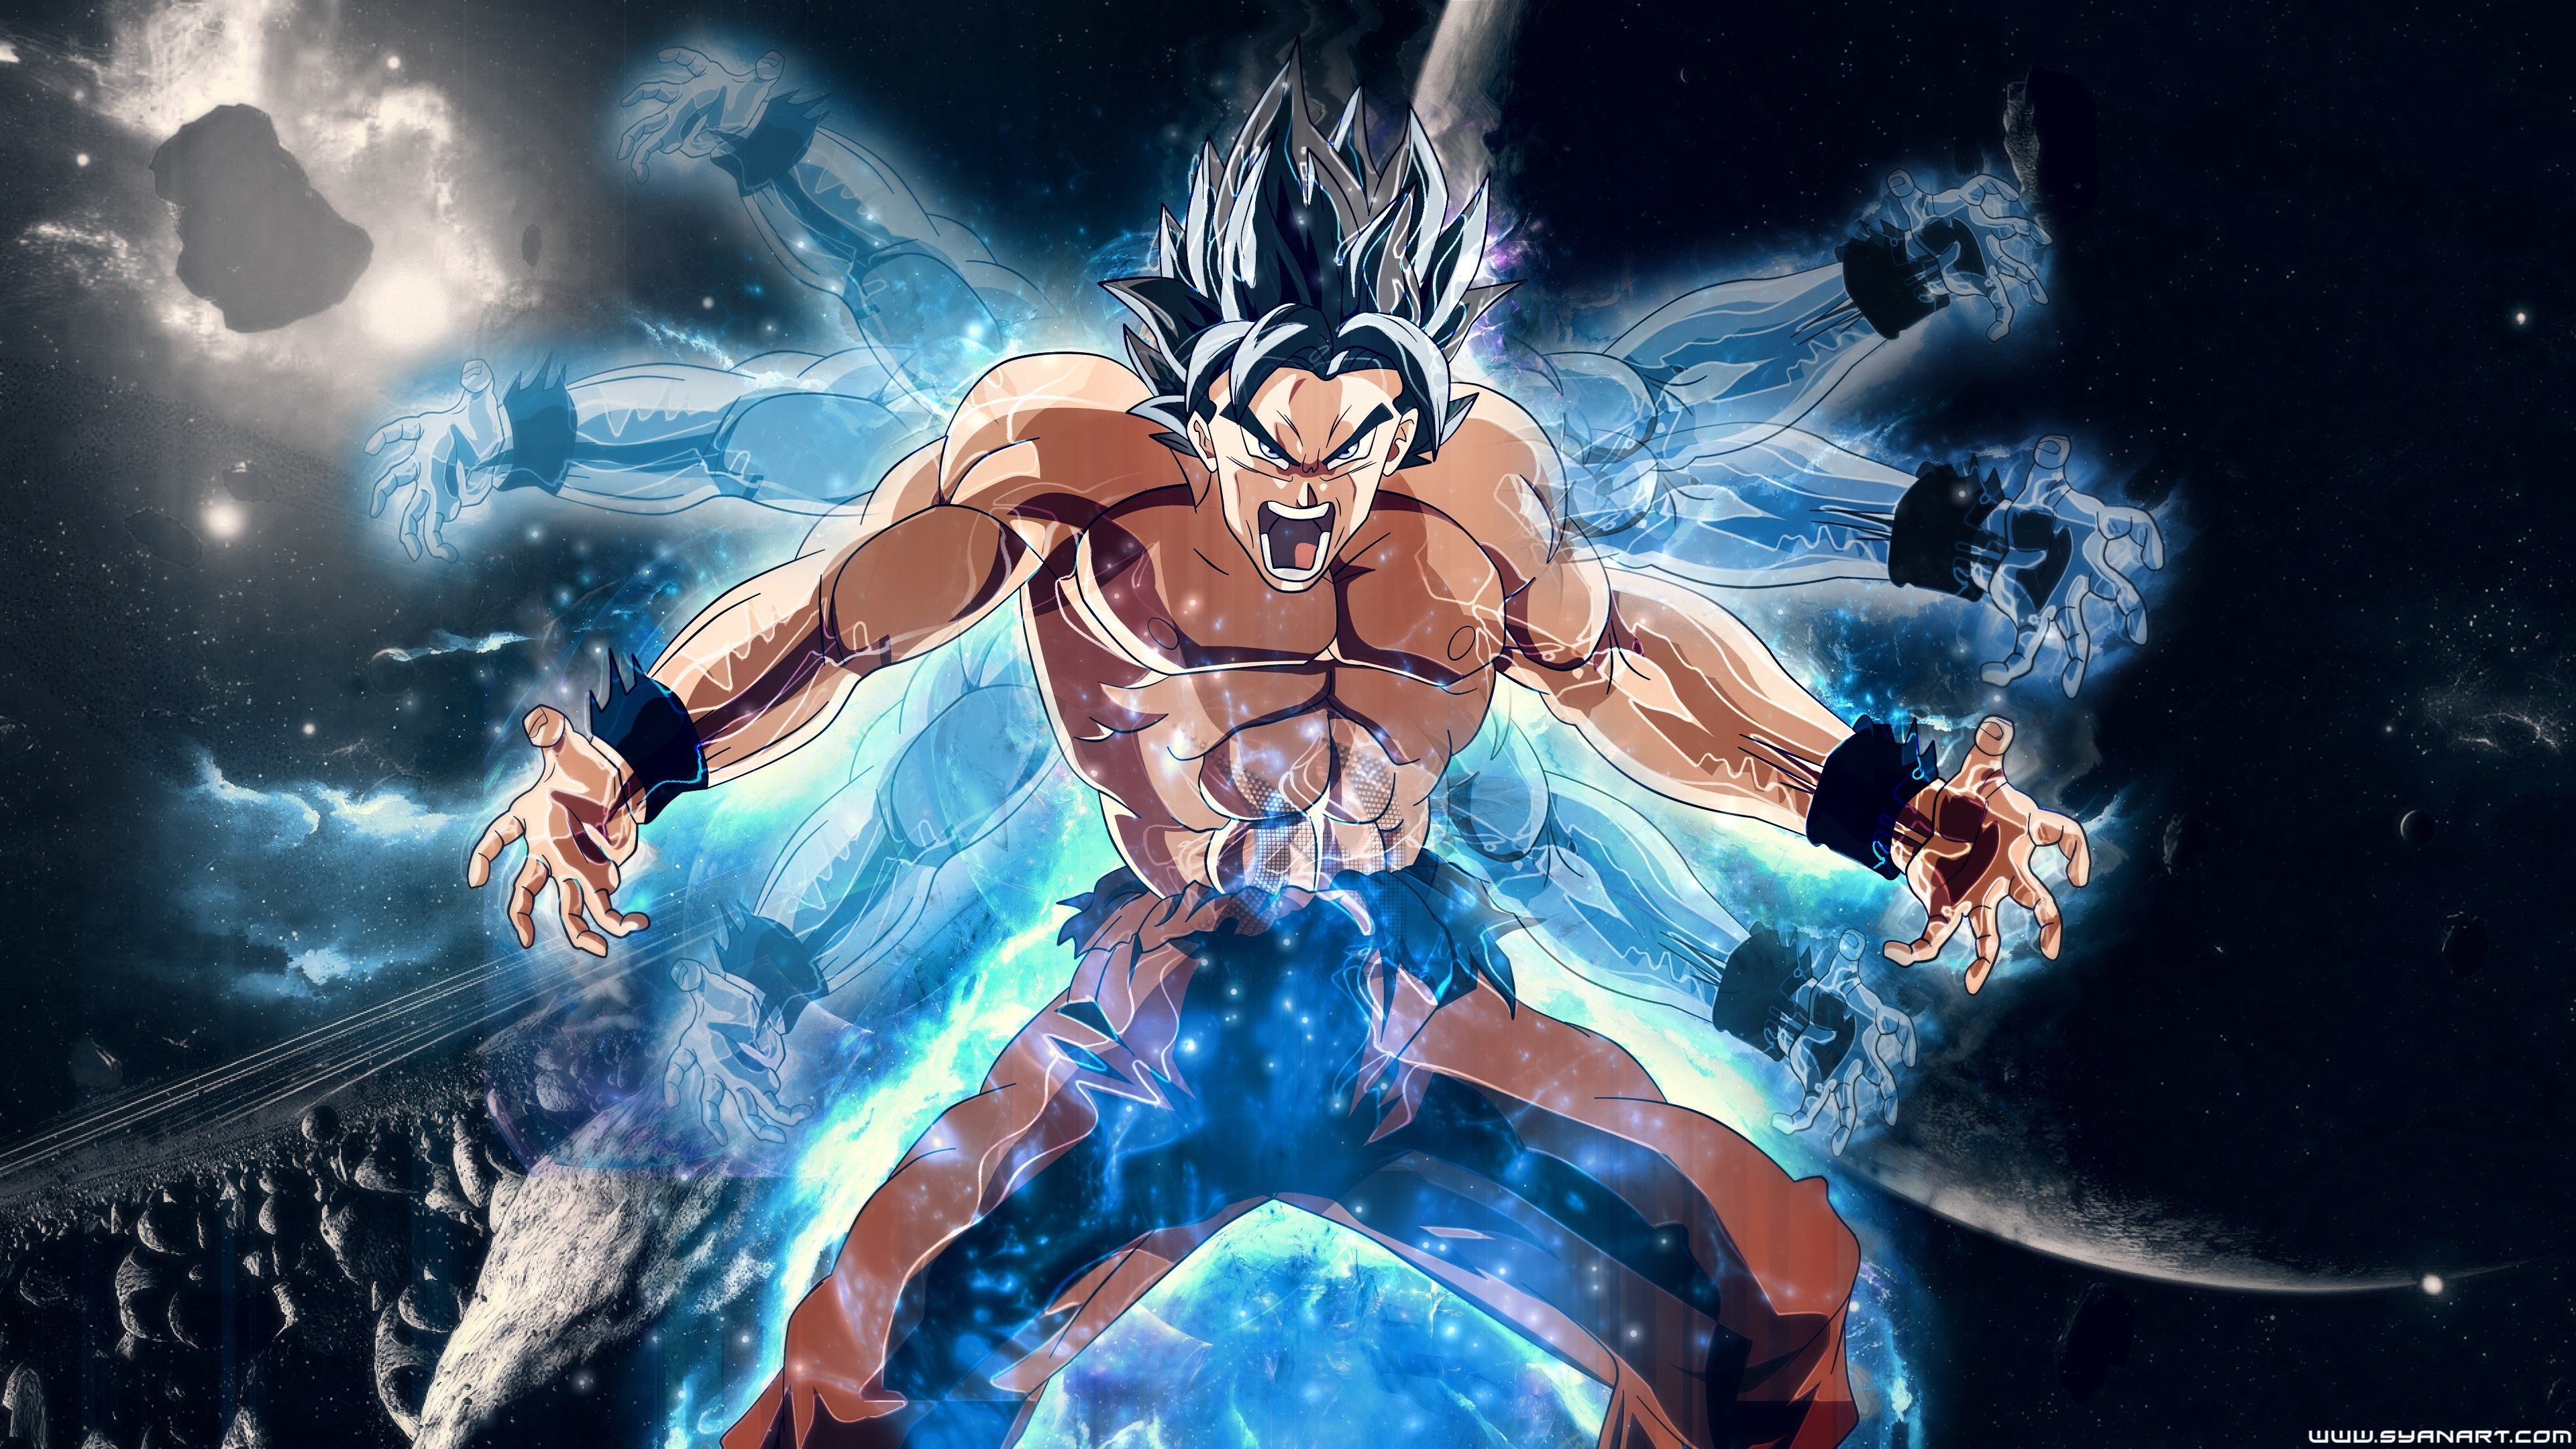 3840x2160 Dragon Ball Super 4k Hd Wallpaper Backgrounds Free